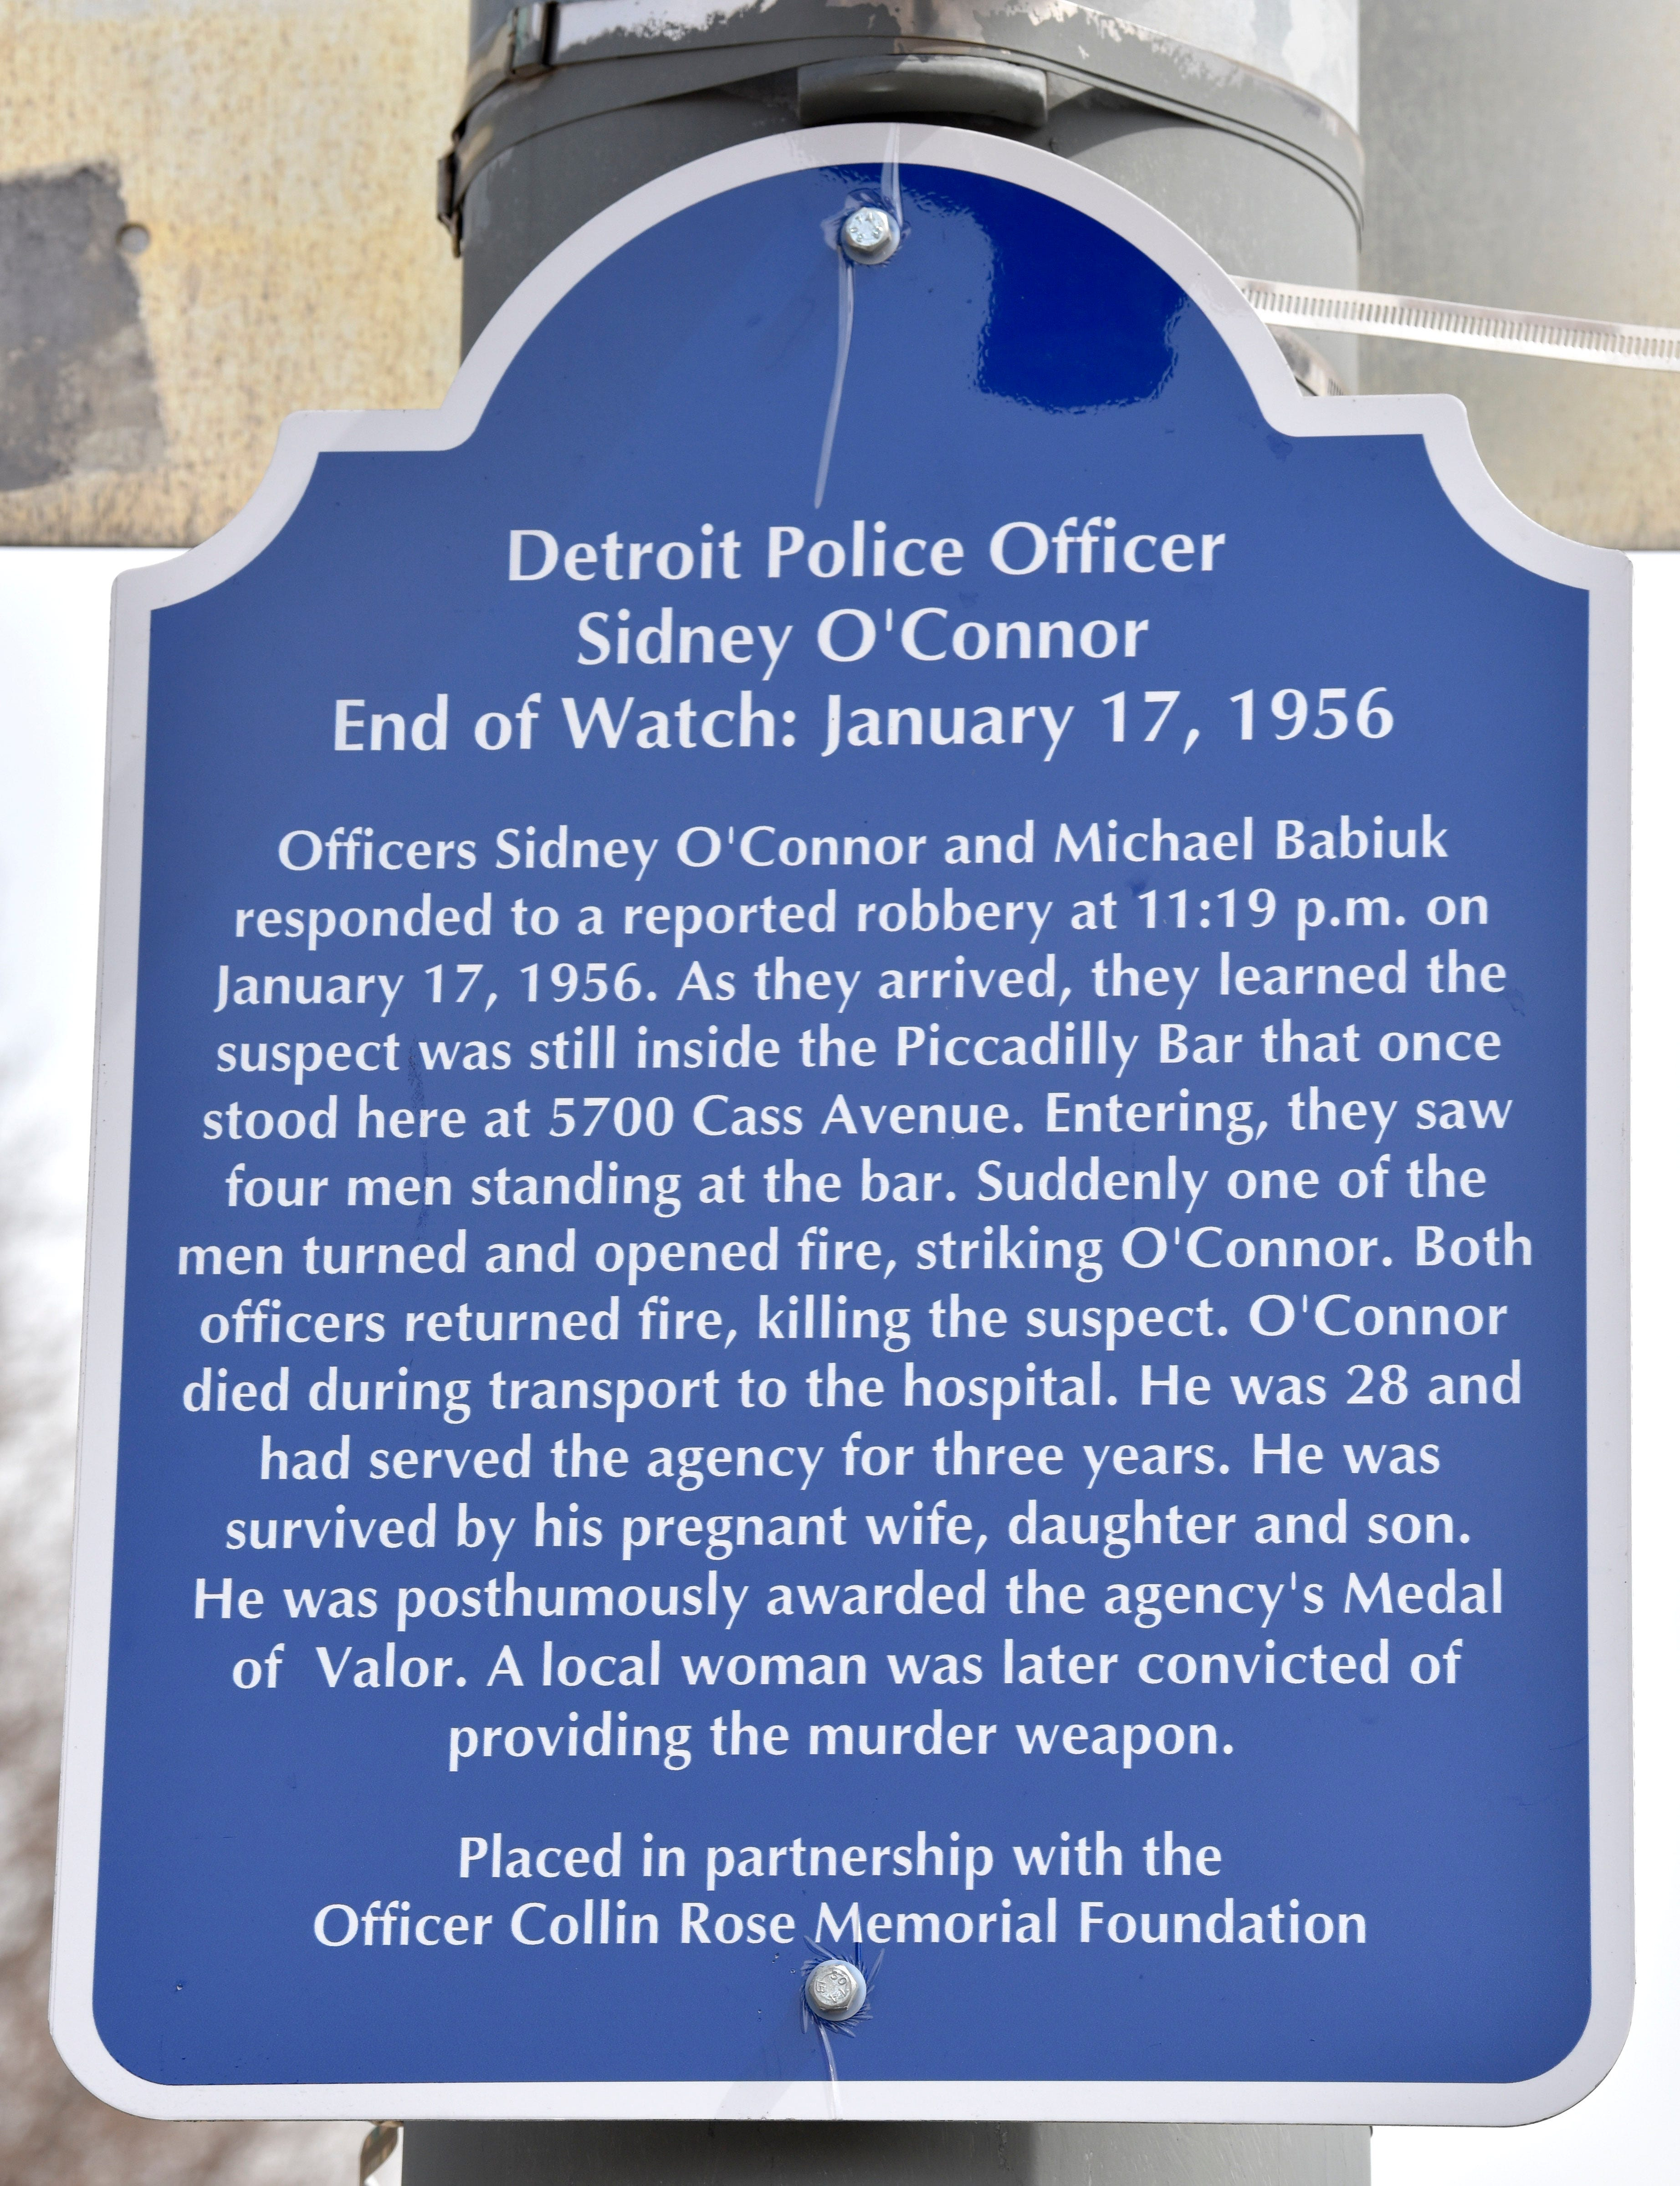 The End of Watch sign for fallen Detroit Police Officer Sidney O'Connor, who died in the line of duty on January 17, 1956, is  displayed on a pole at the intersection of Cass and West Palmer in Detroit.